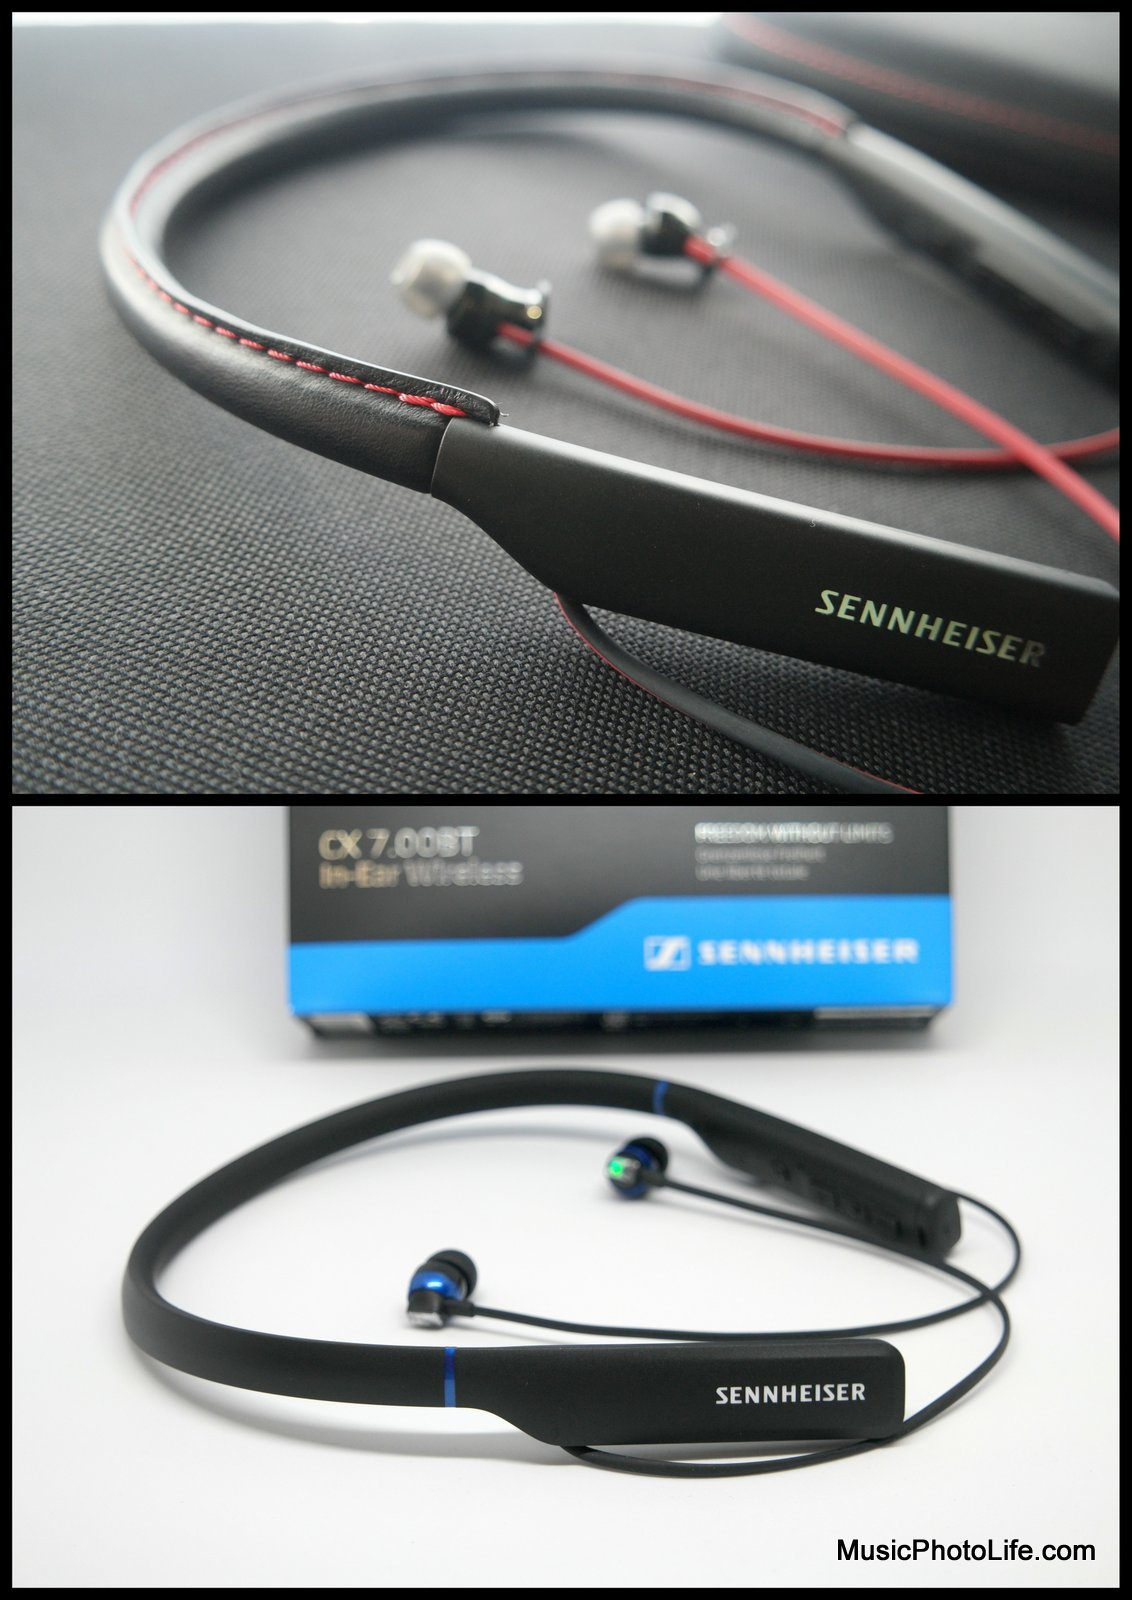 Sennheiser In-Ear Wireless M2 IEBT and CX 7.00BT review by musicphotolife.com